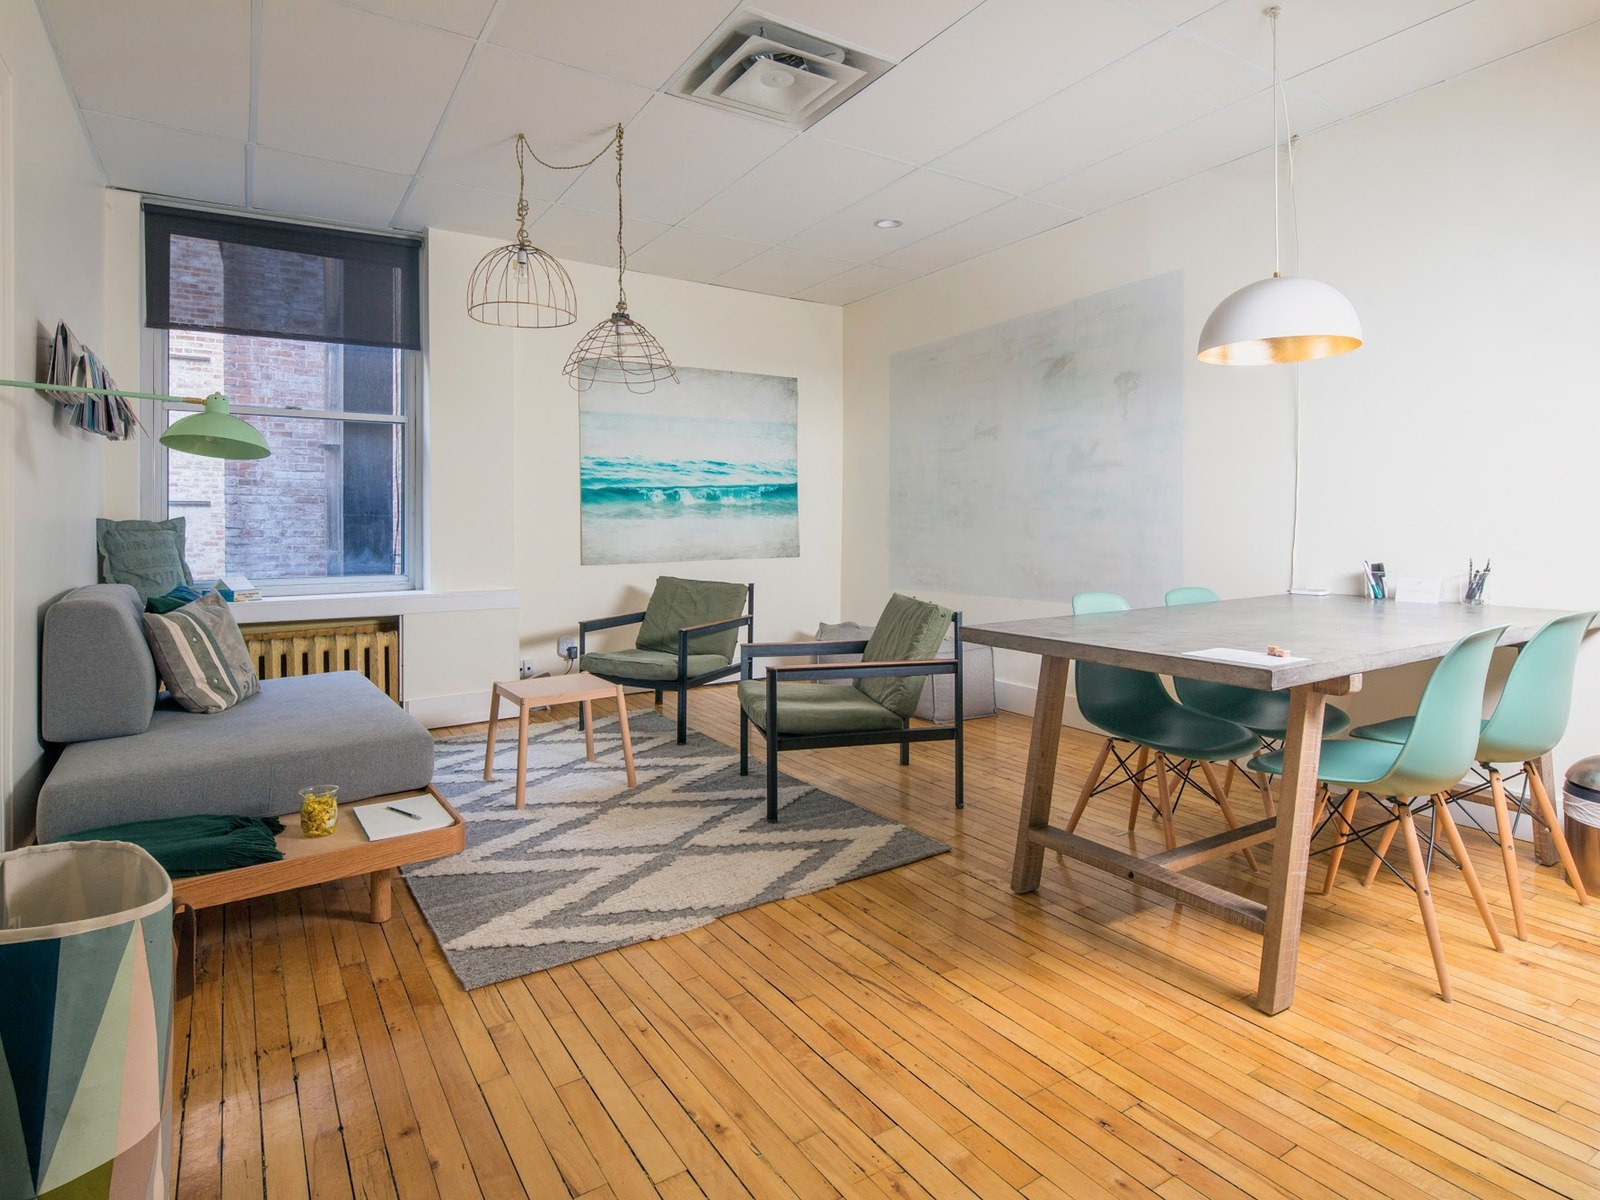 15 montreal coworking spaces to consider for your startup young